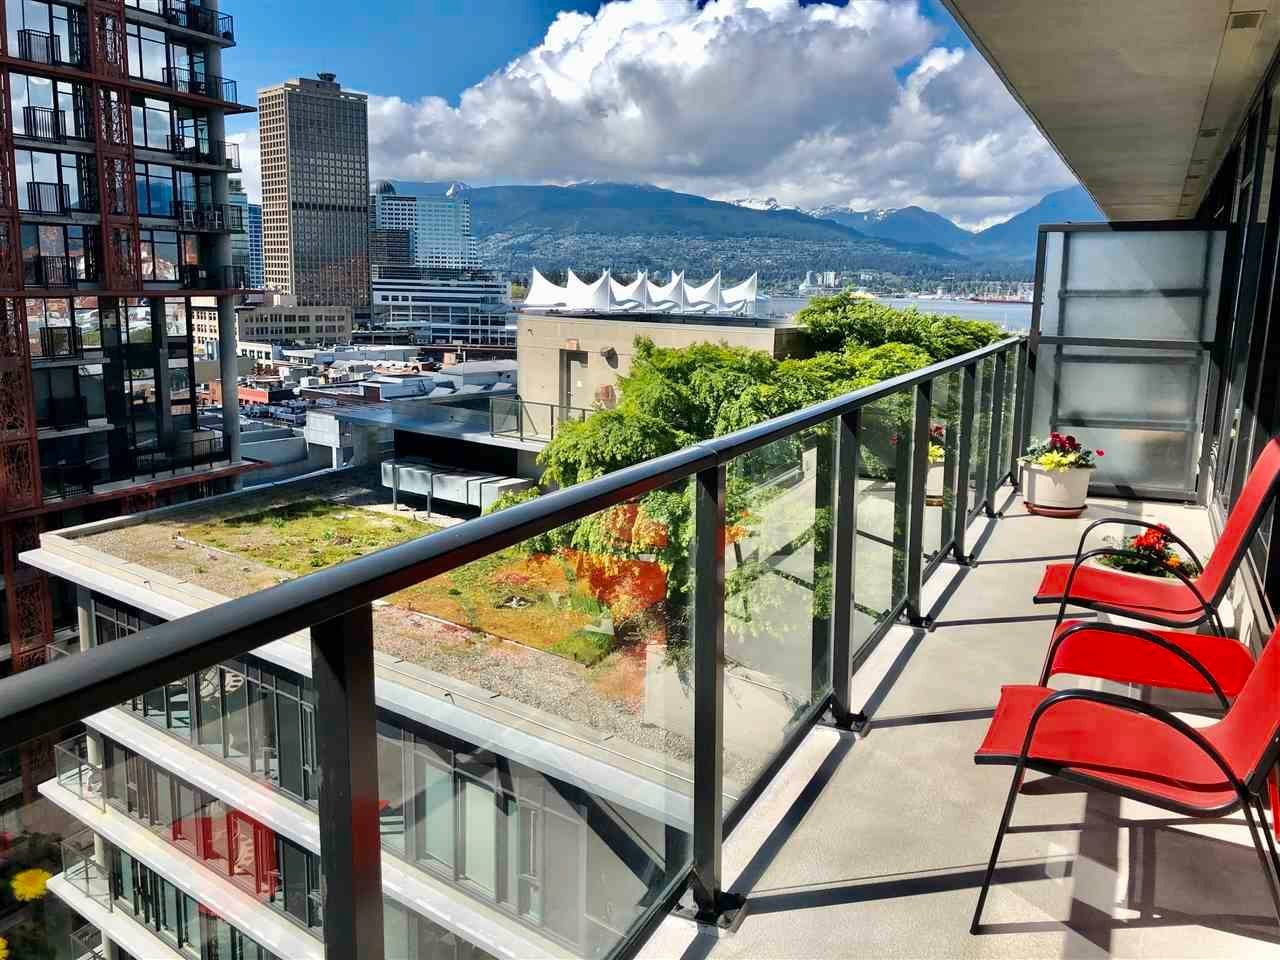 """Main Photo: 1406 108 W CORDOVA Street in Vancouver: Downtown VW Condo for sale in """"WOODWARDS W-32"""" (Vancouver West)  : MLS®# R2578411"""